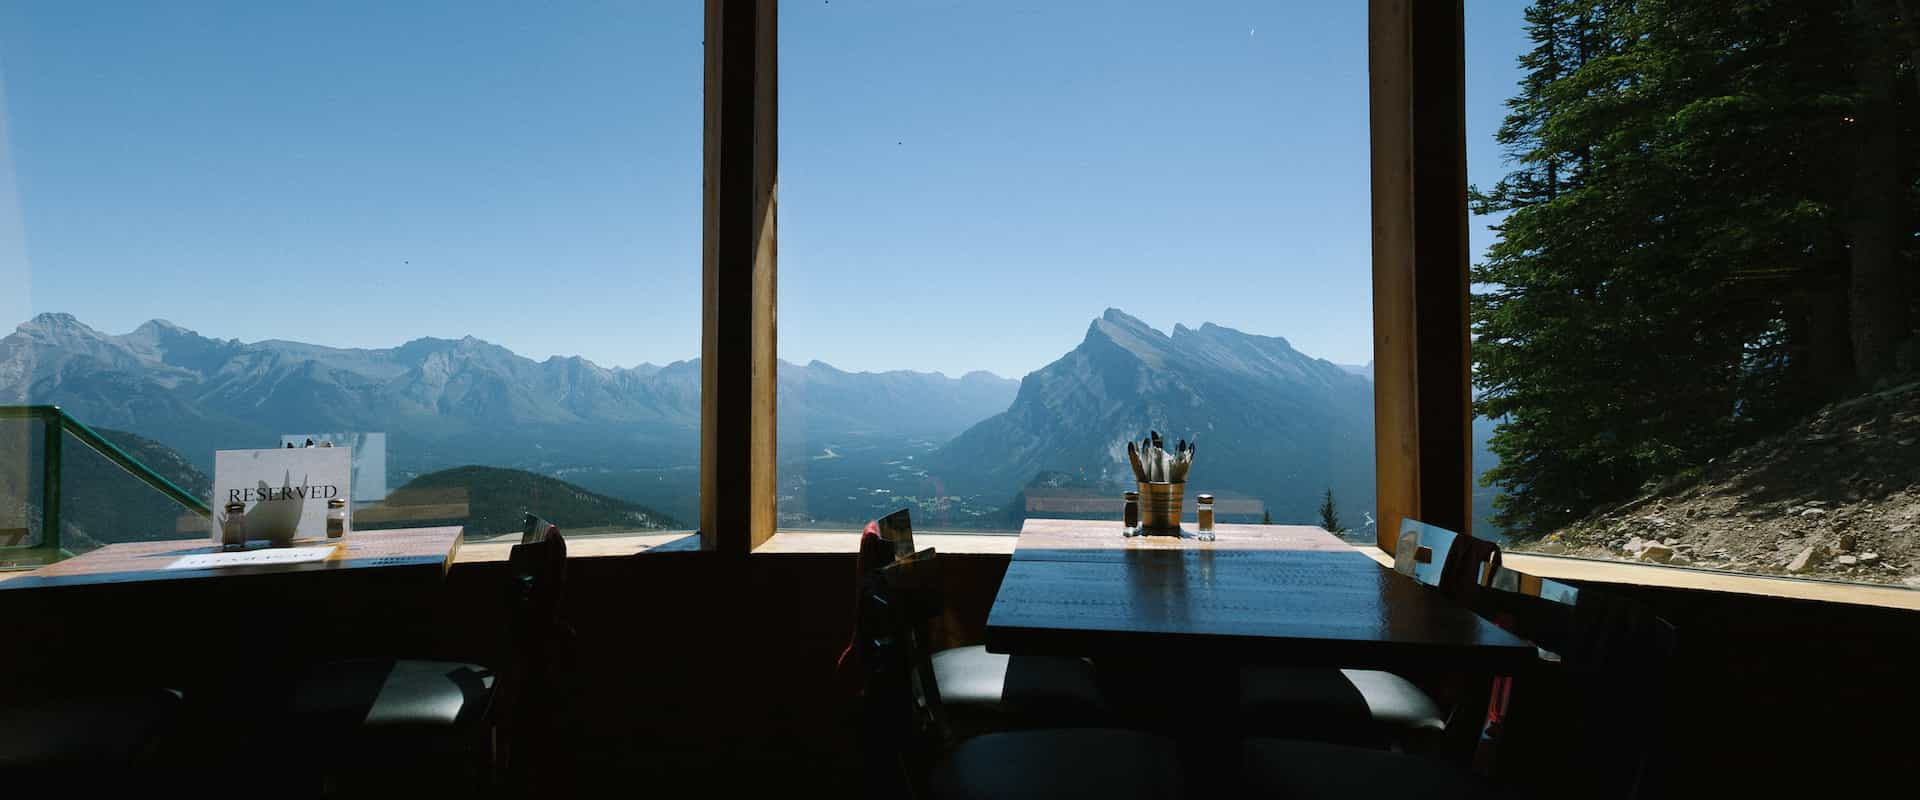 Enjoy mountain views while dining at the Cliffhouse Bistro at Mount Norquay up the Banff Sightseeing Chairlift in Banff in the Canadian Rockies